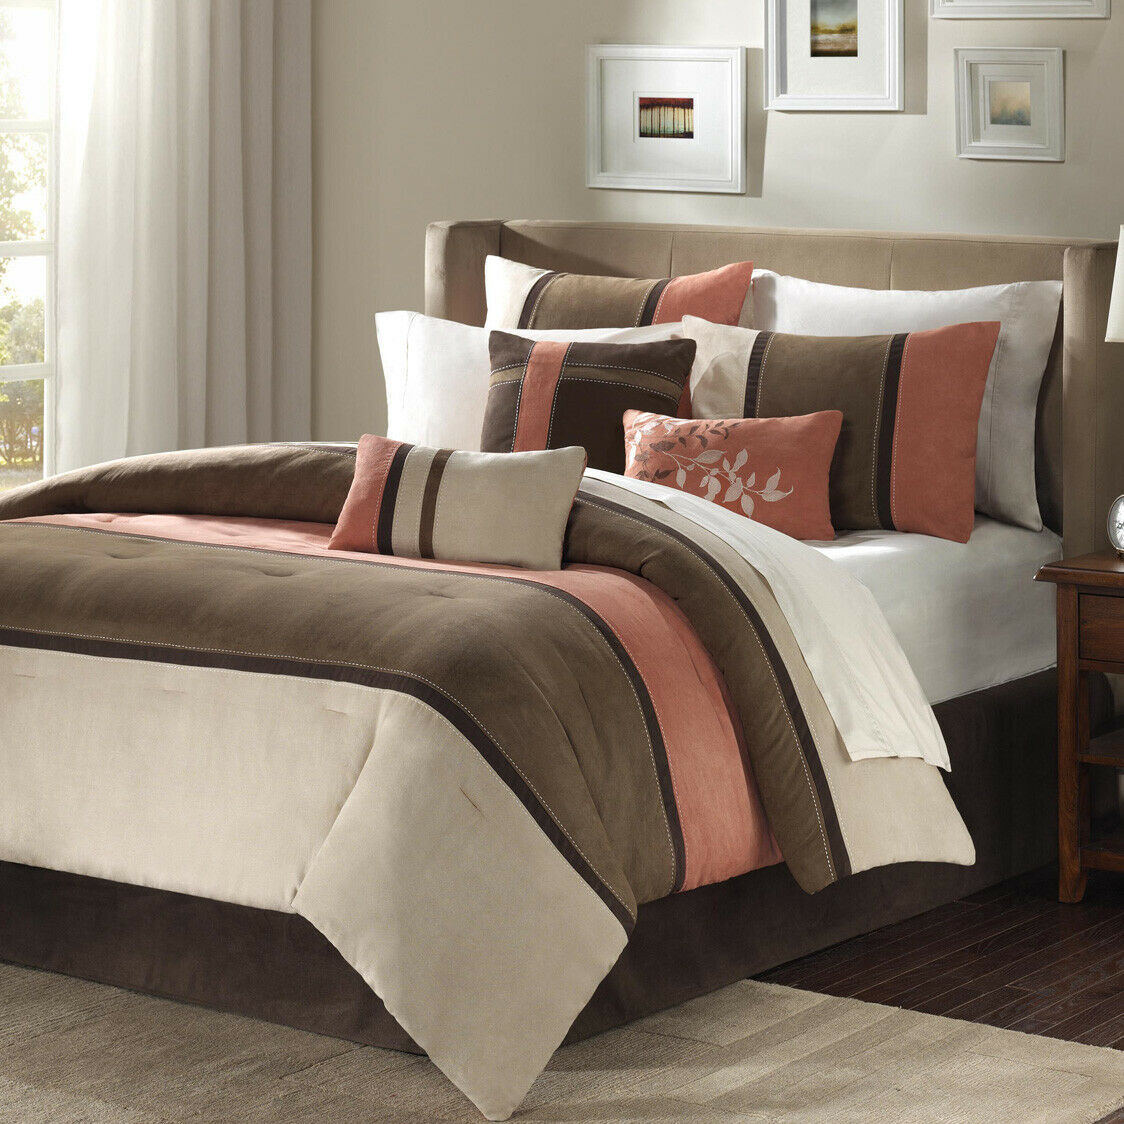 Palisades Queen Size 7pc Comforter Set in Blue Grey /& Ivory Striped Micro Suede